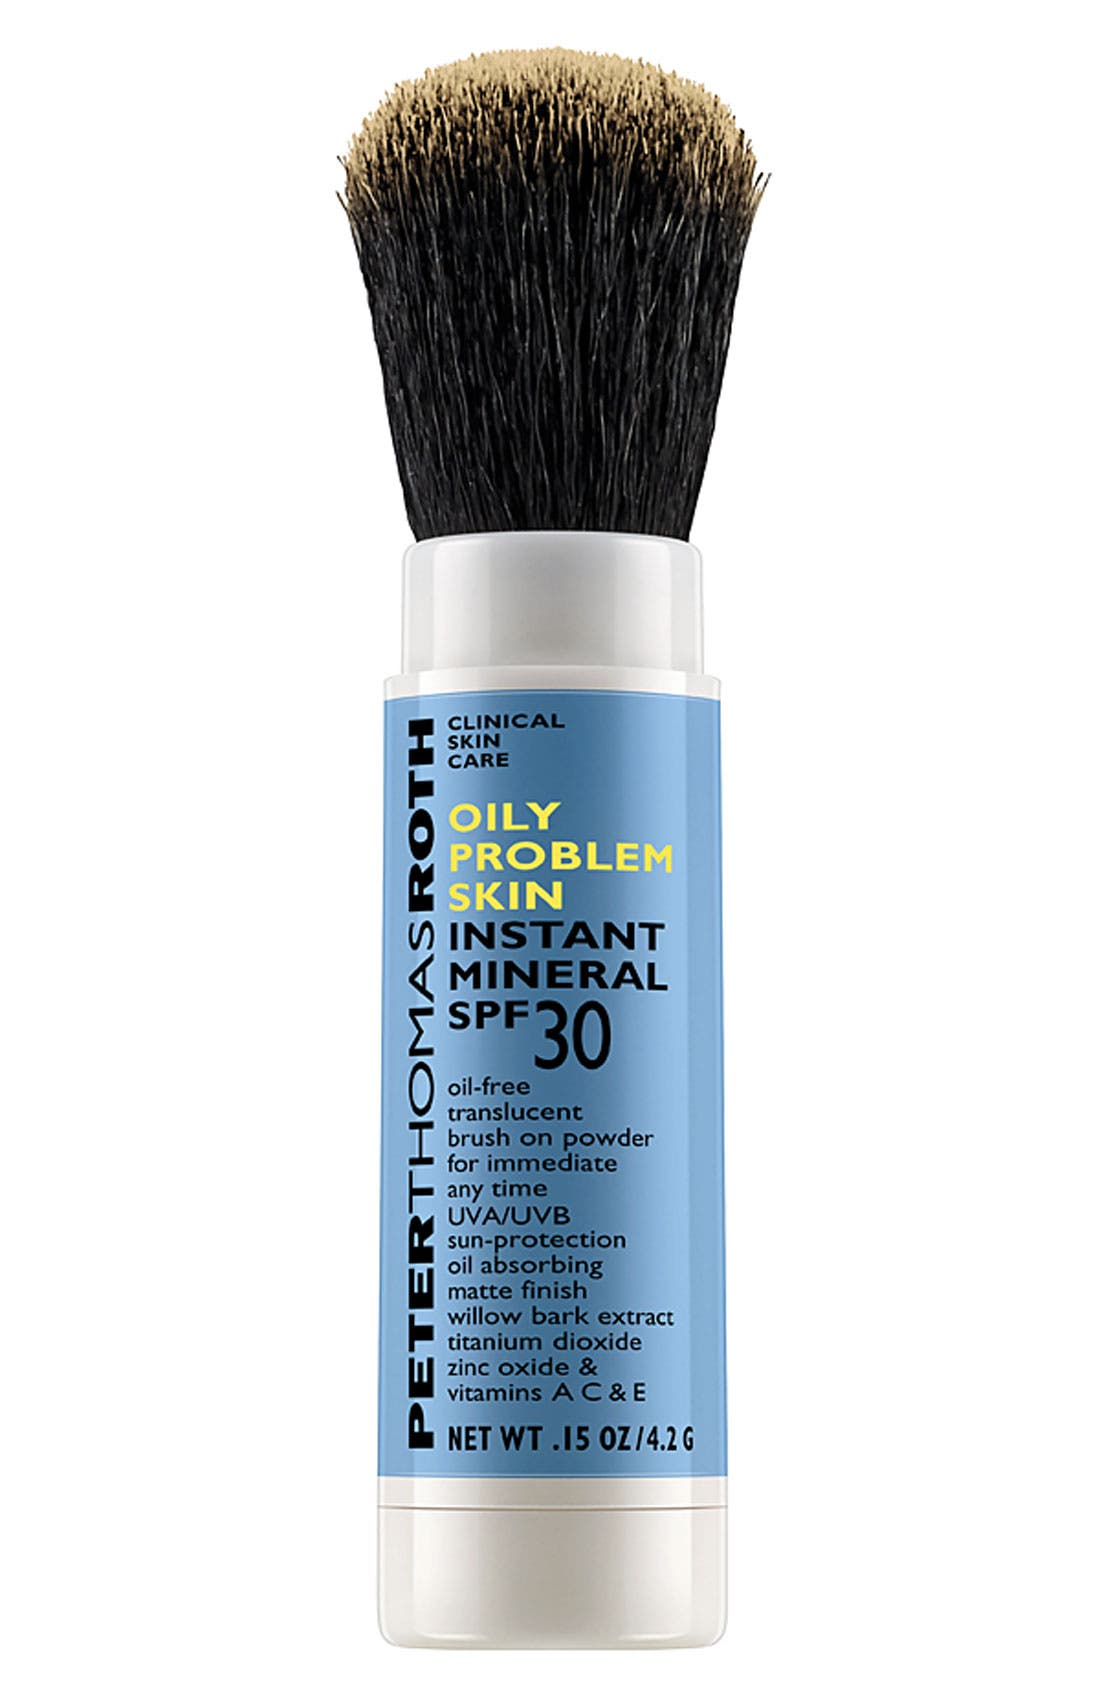 PETER THOMAS ROTH, Instant Mineral Oily Problem Skin Translucent Brush-On Powder SPF 30, Main thumbnail 1, color, 000